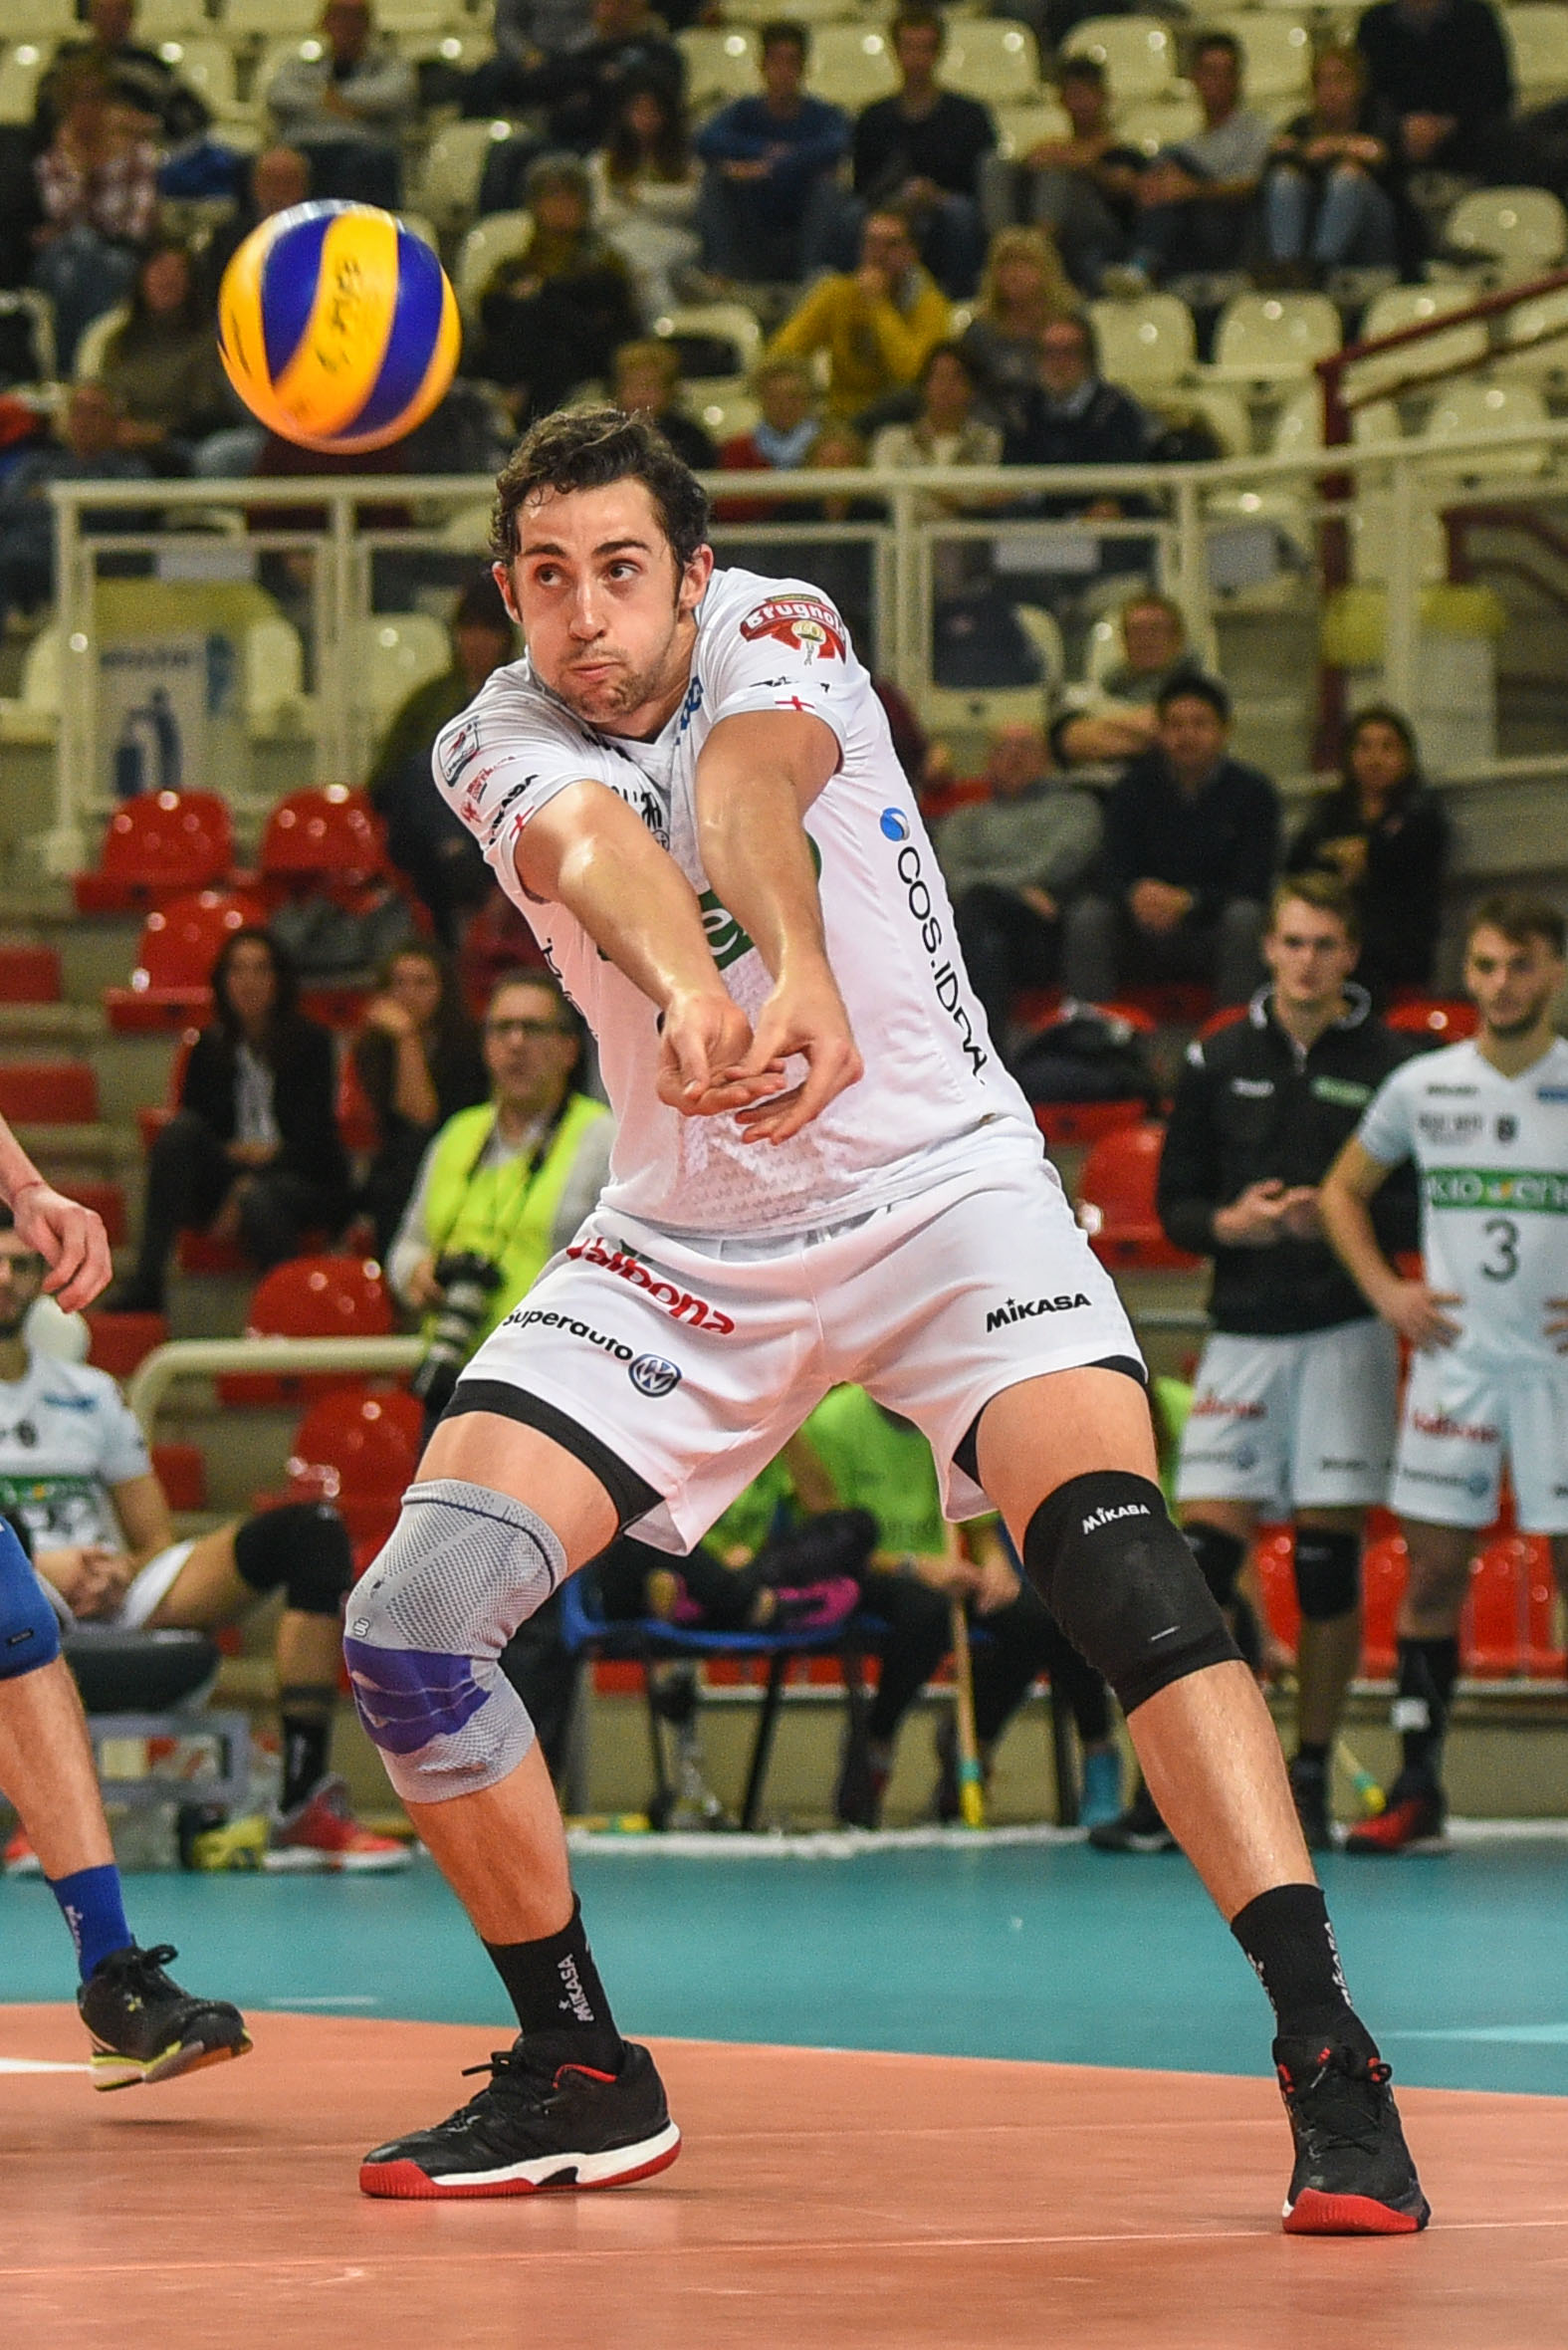 Aurora's Stephen Marr is lighting things up in Italy.  Photo: Padova Pallavolo